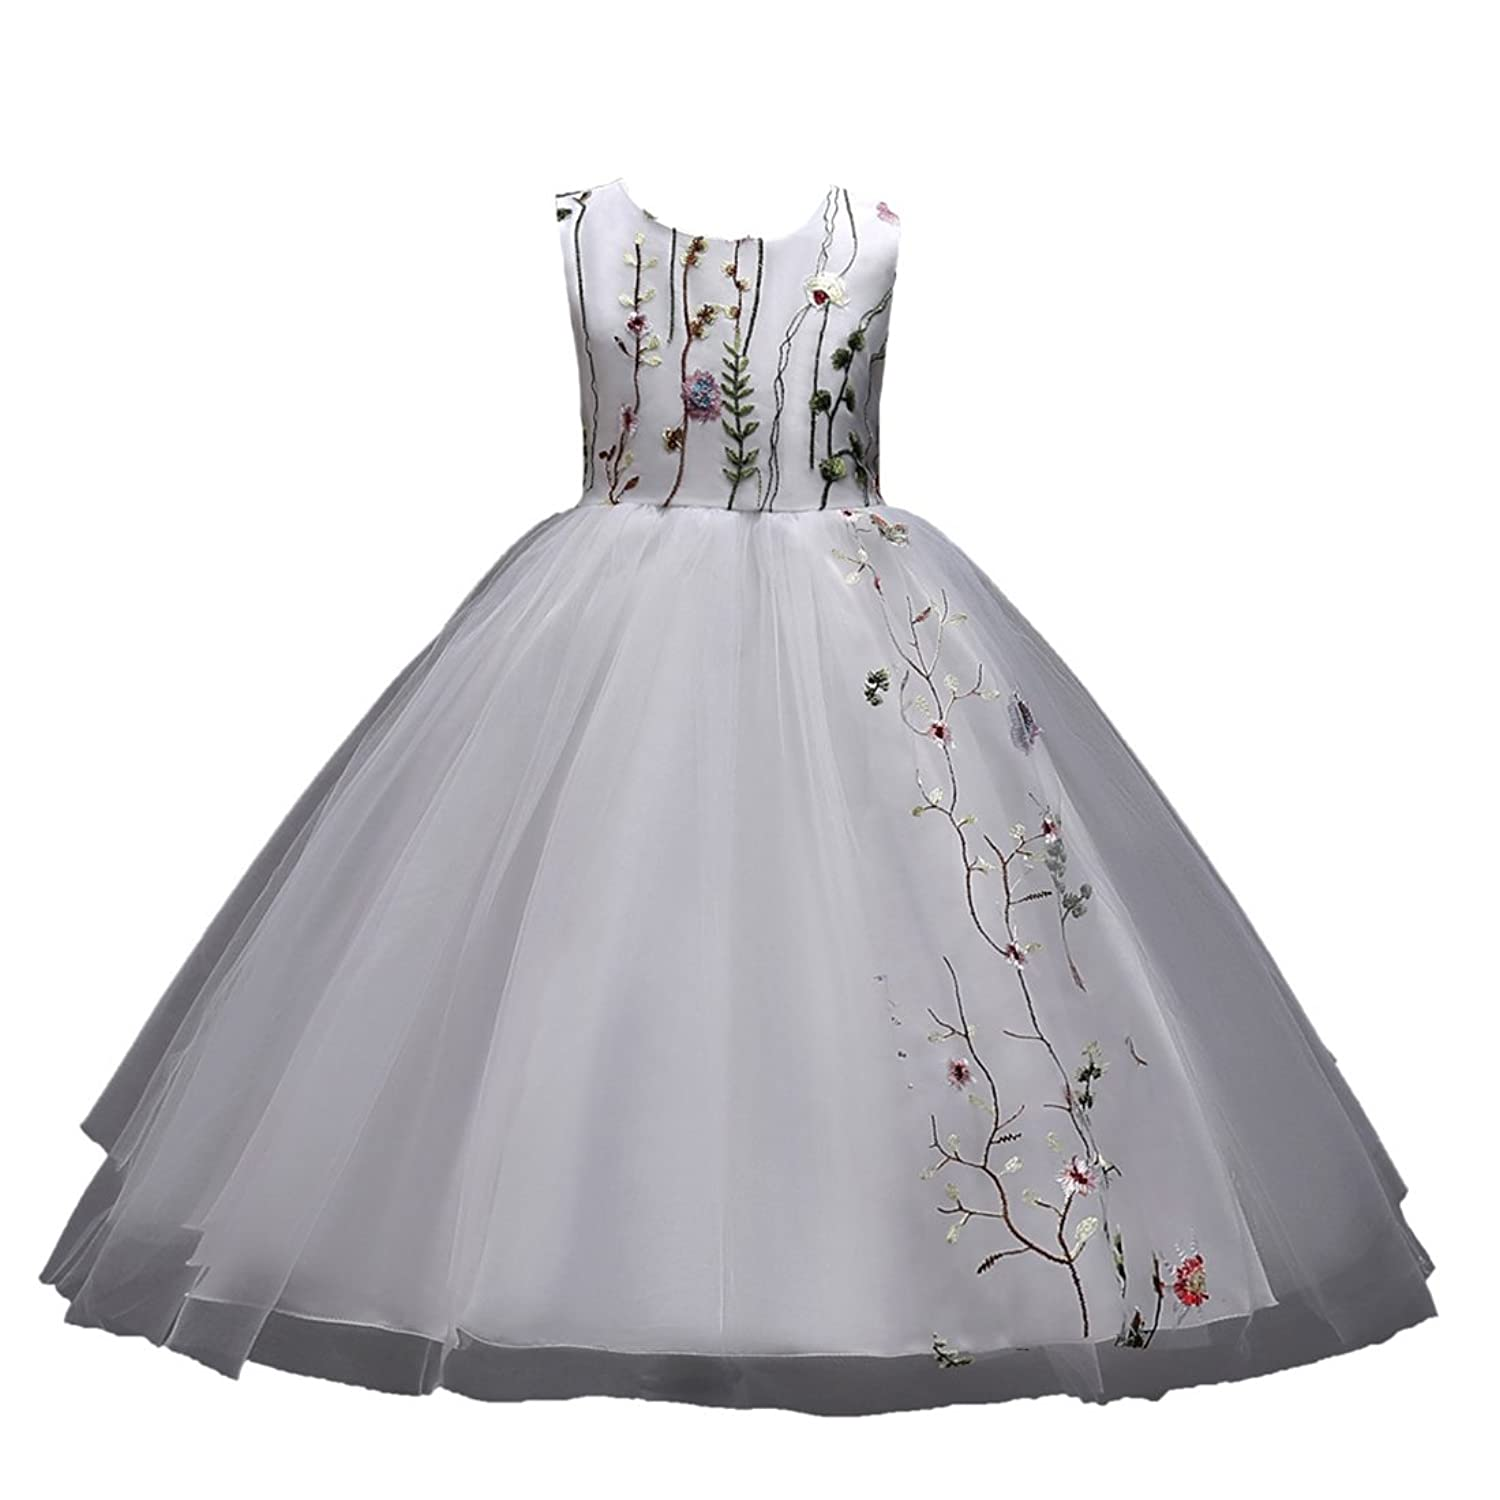 ADHS Kids Baby Girl Special Occasion Wedding Gowns Party Flower Dresses